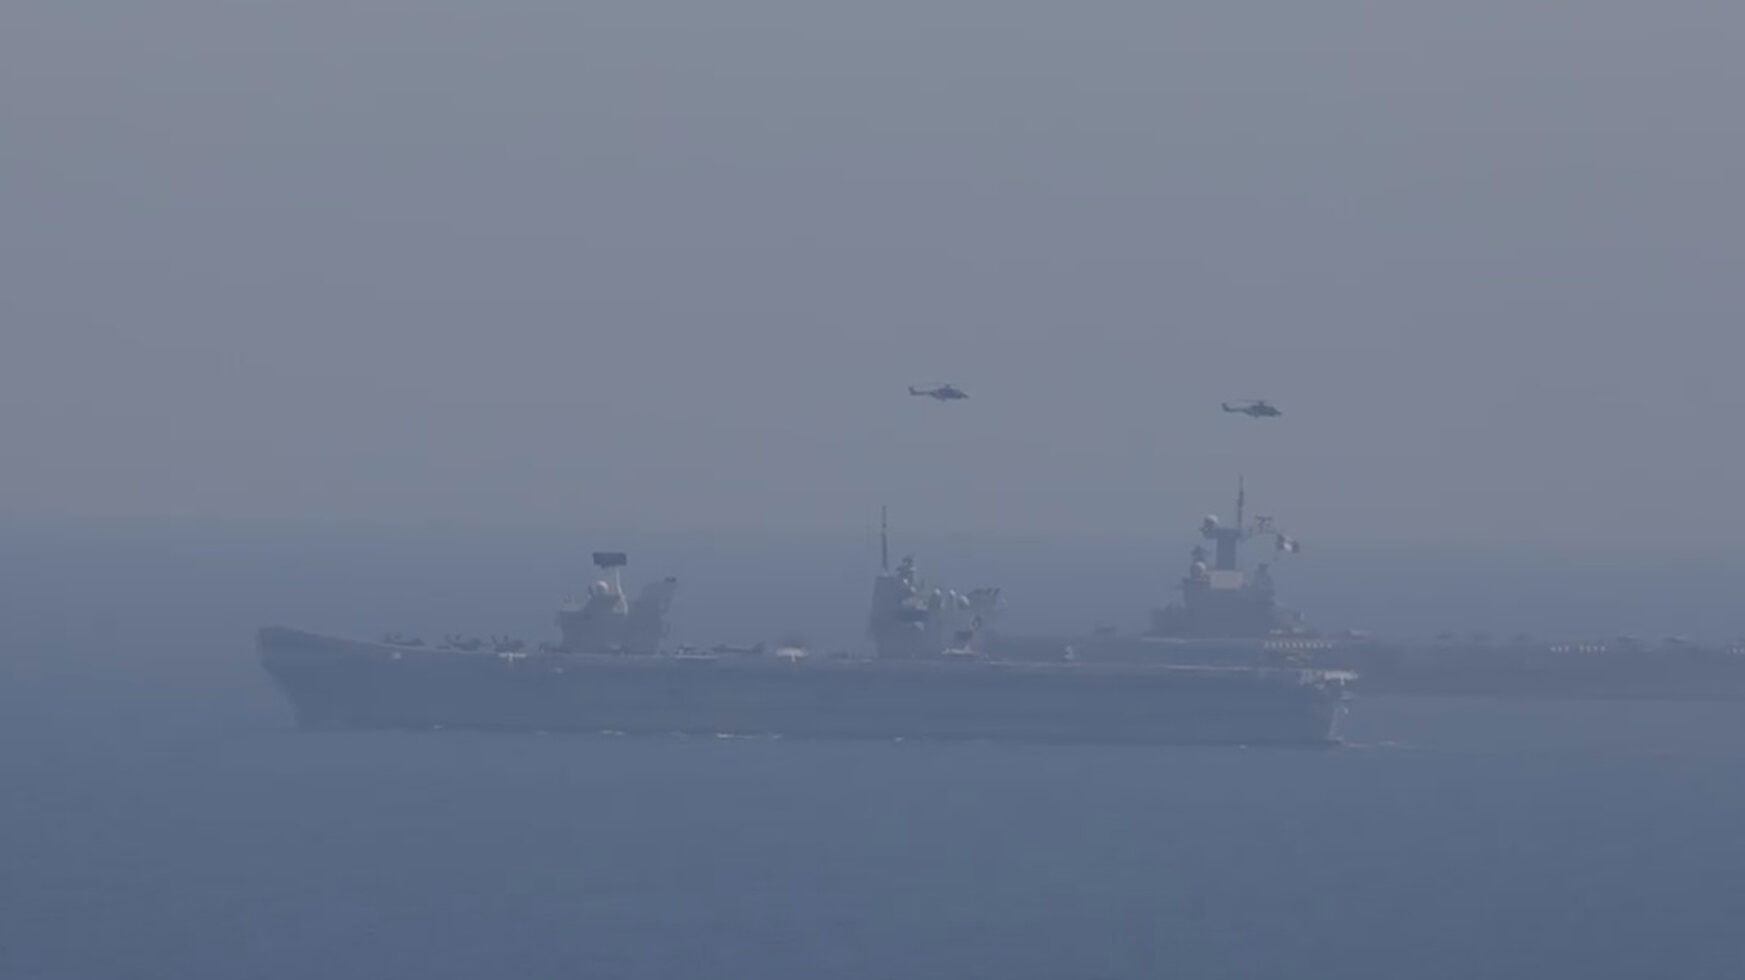 VIDEO: Queen Elizabeth Too: British Flagship Flattop Joins French Warship For War Games